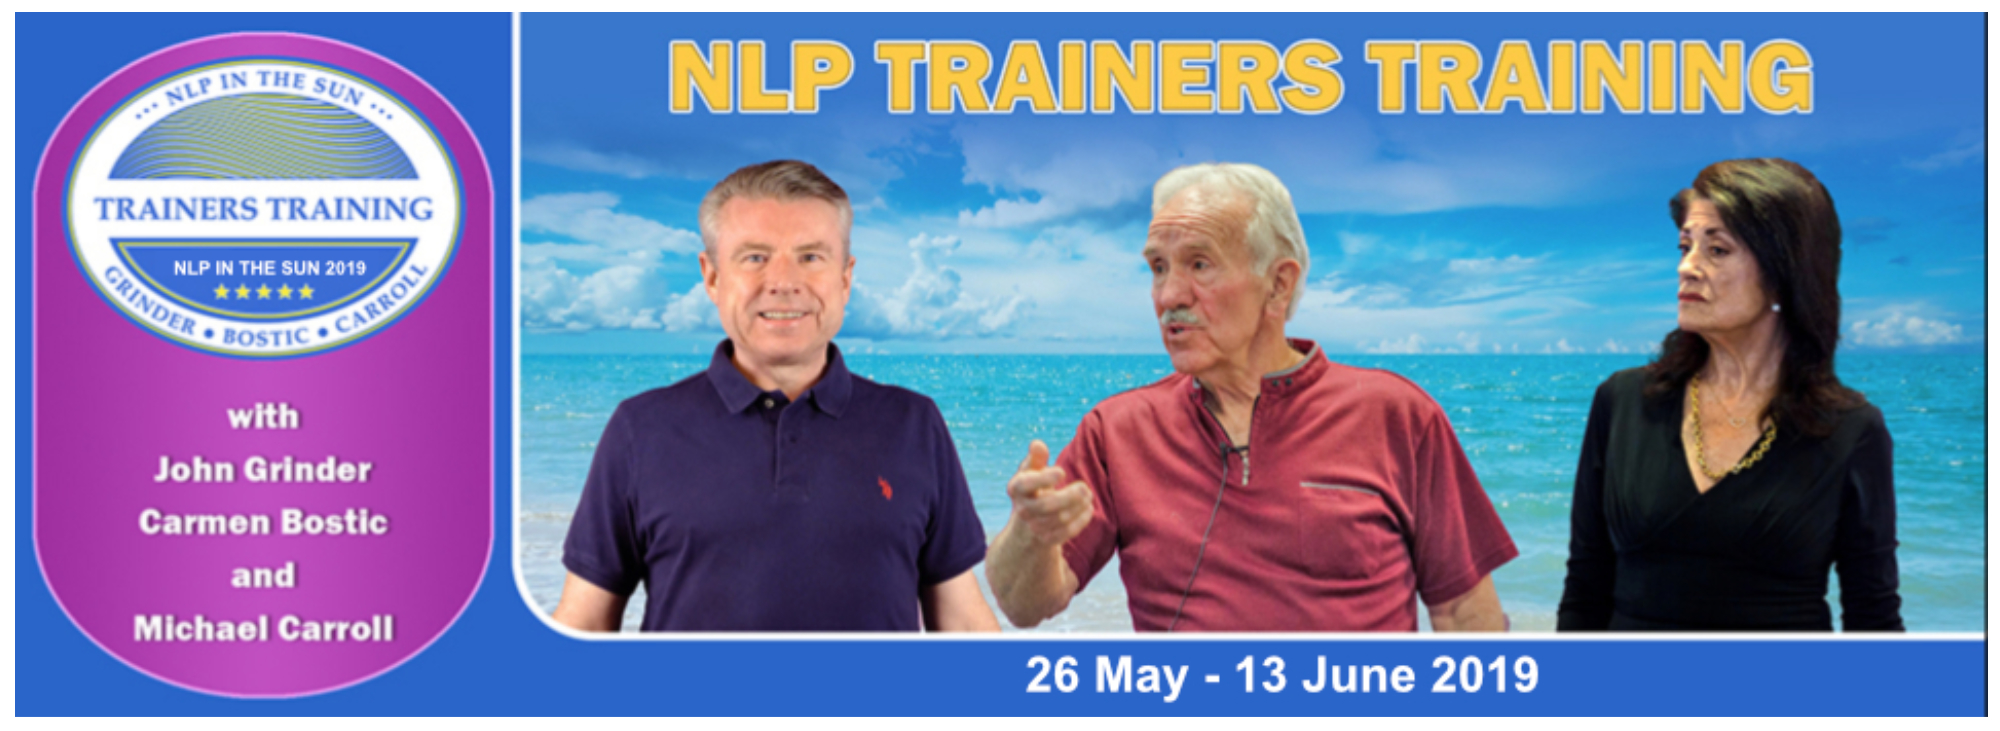 NLP Trainers Training (Portugal)